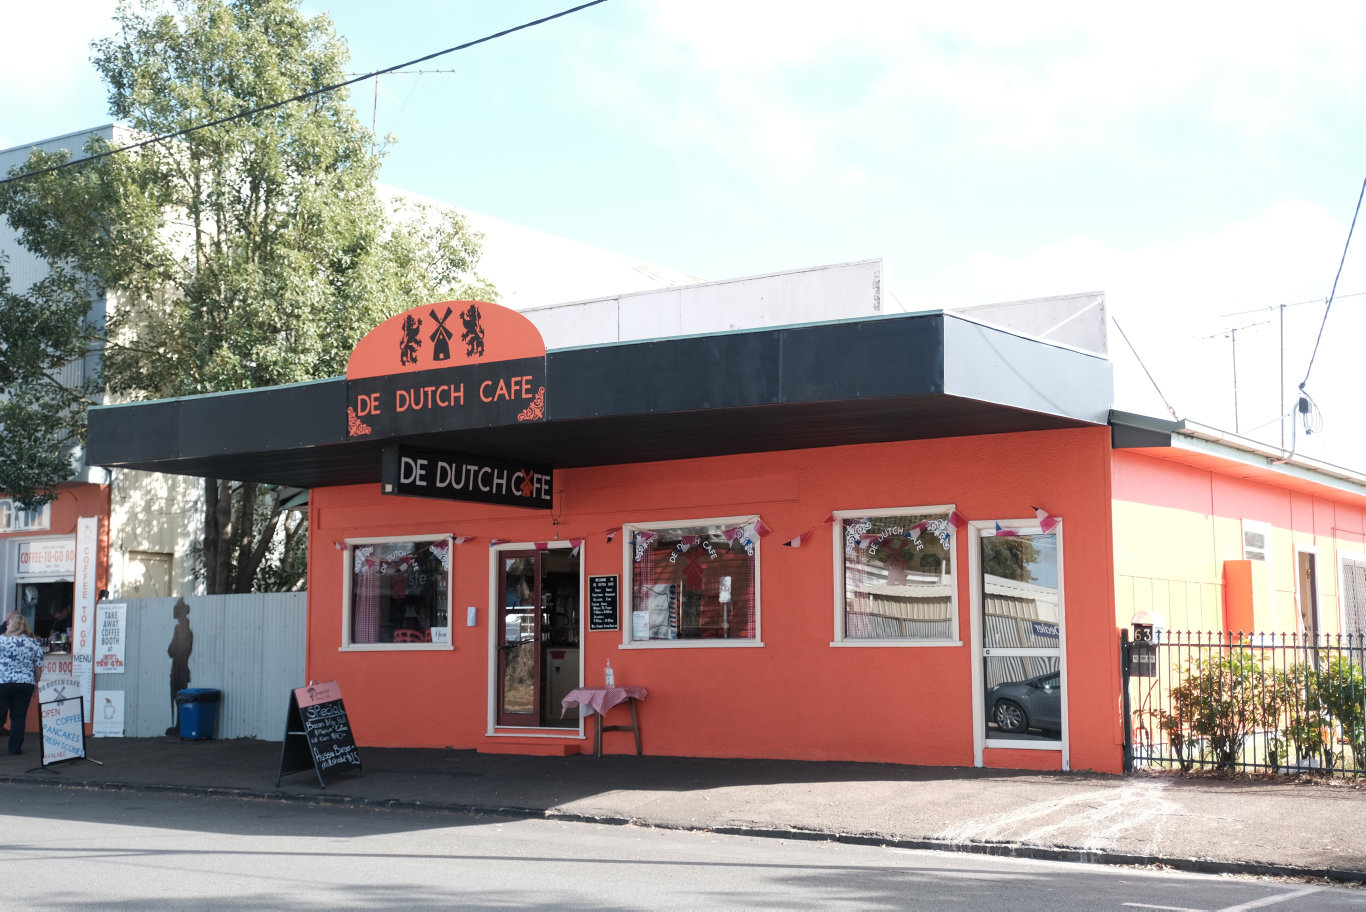 Father and daughter team Ron Ruijter and Amber Meade have opened a new eater - De Dutch Cafe - in Newtown.